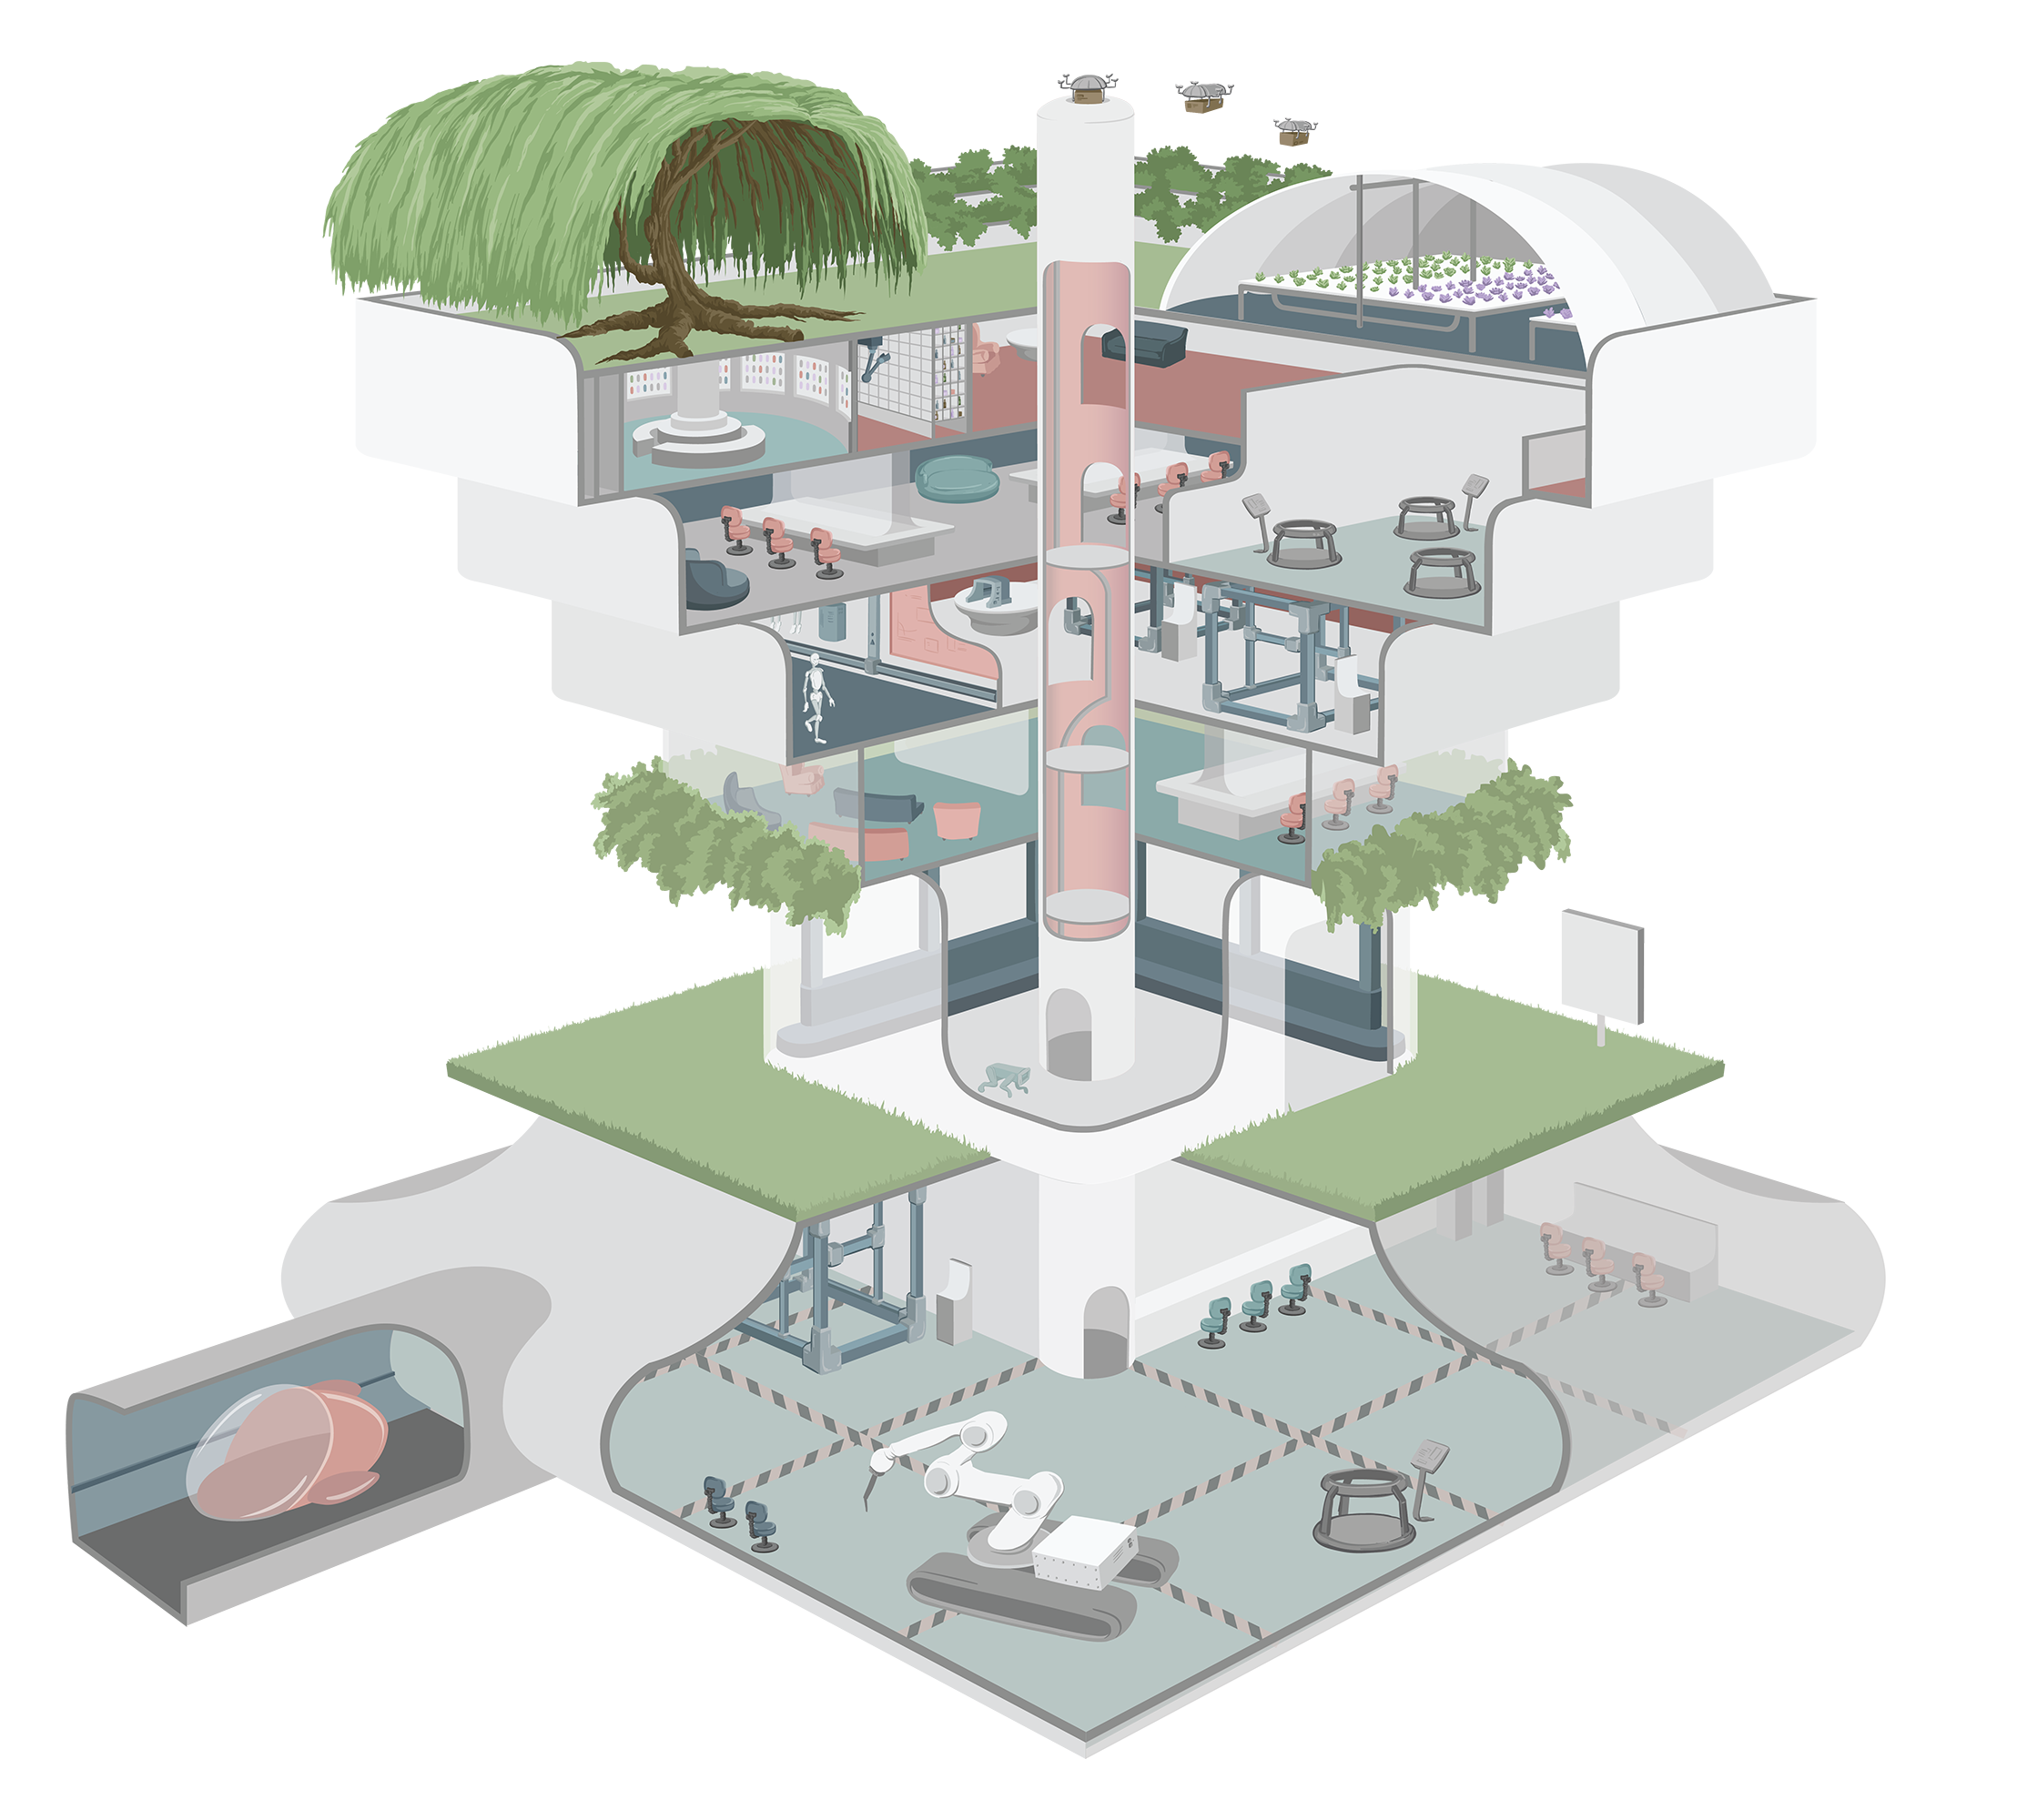 Concept Building from the year 2030 for the Civic I/O Mayors Summit at SXSW, vector illustration